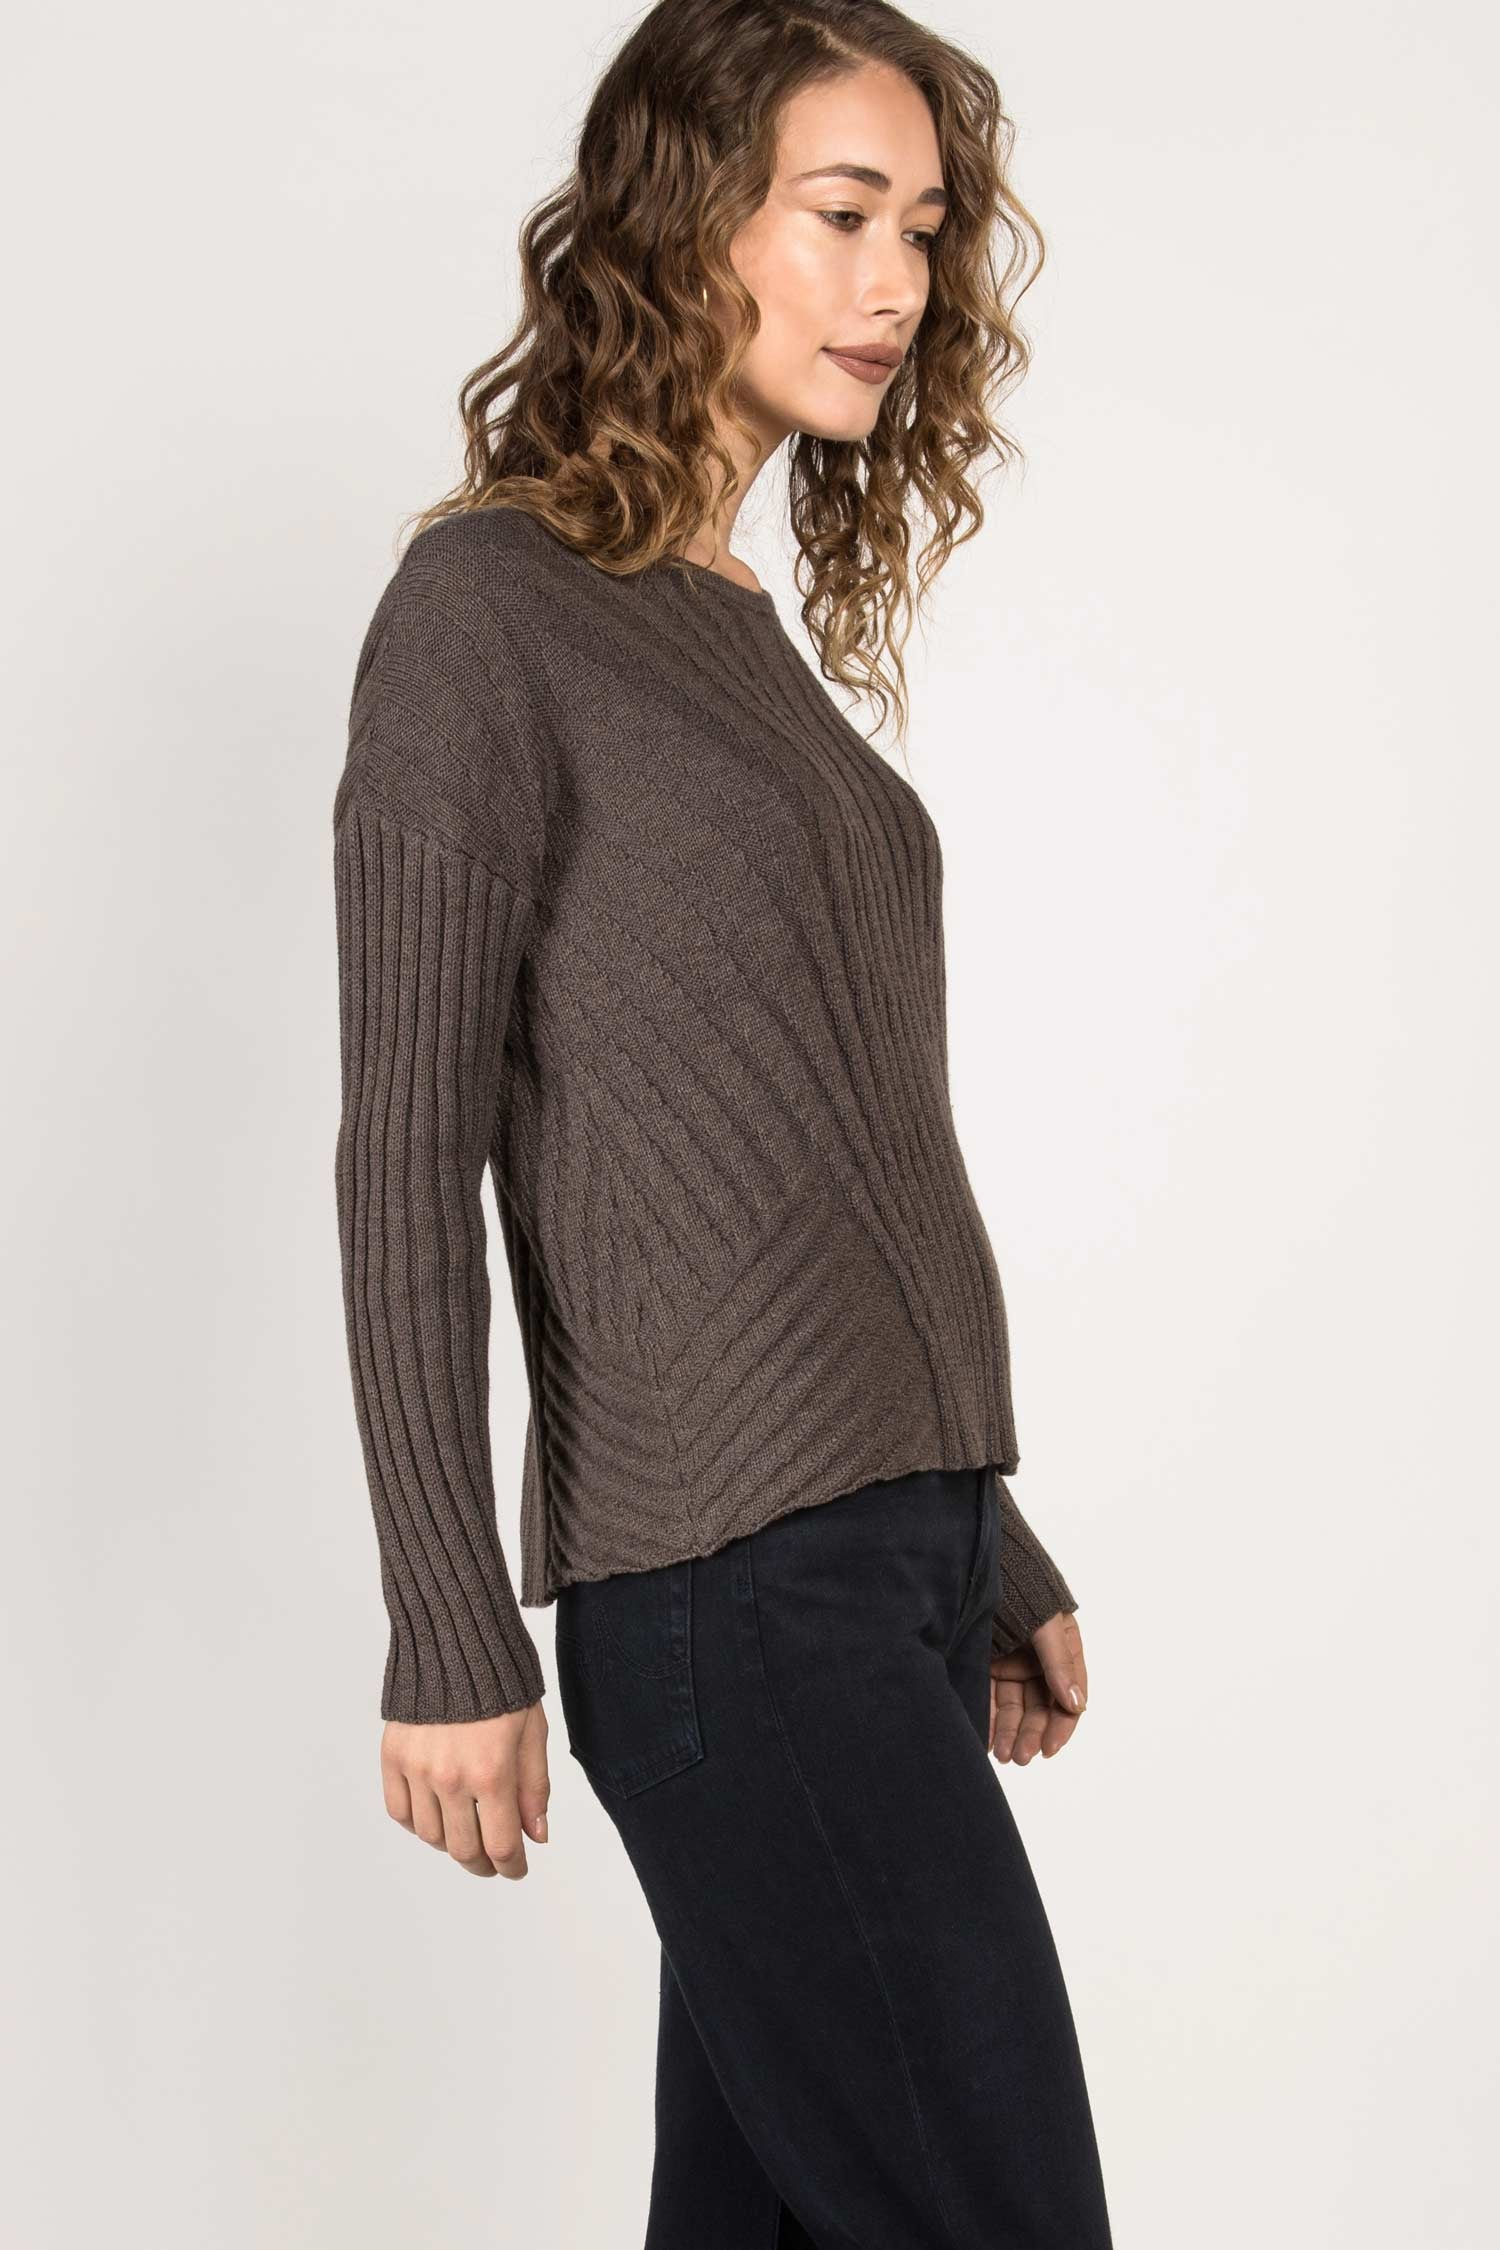 Womens Organic Cotton Sweater | Boxy Rib Pullover | Box Top Sweater | Stone